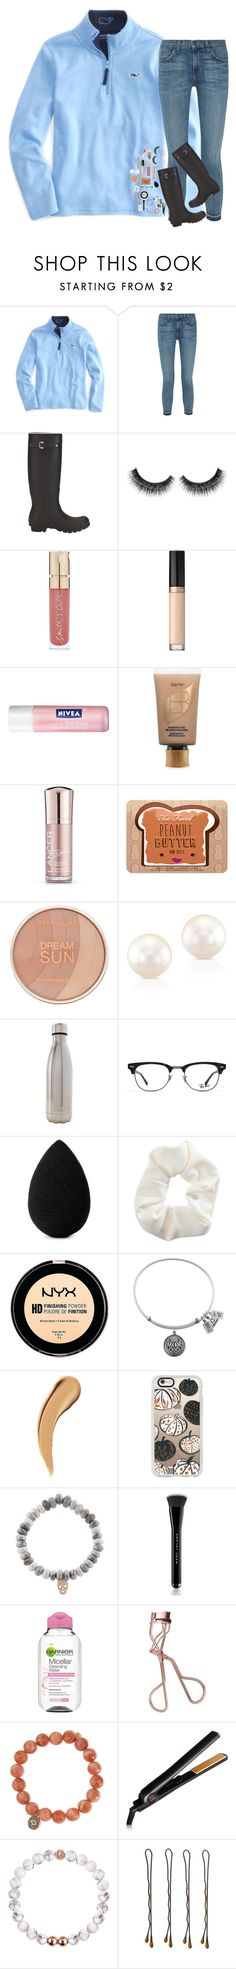 """""""she gotta bad reputation"""" by hailstails ❤ liked on Polyvore featuring Vineyard Vines, Current/Elliott, Hunter, Smith & Cult, Too Faced Cosmetics, Nivea, tarte, Lancer Dermatology, Maybelline and Anne Sisteron"""